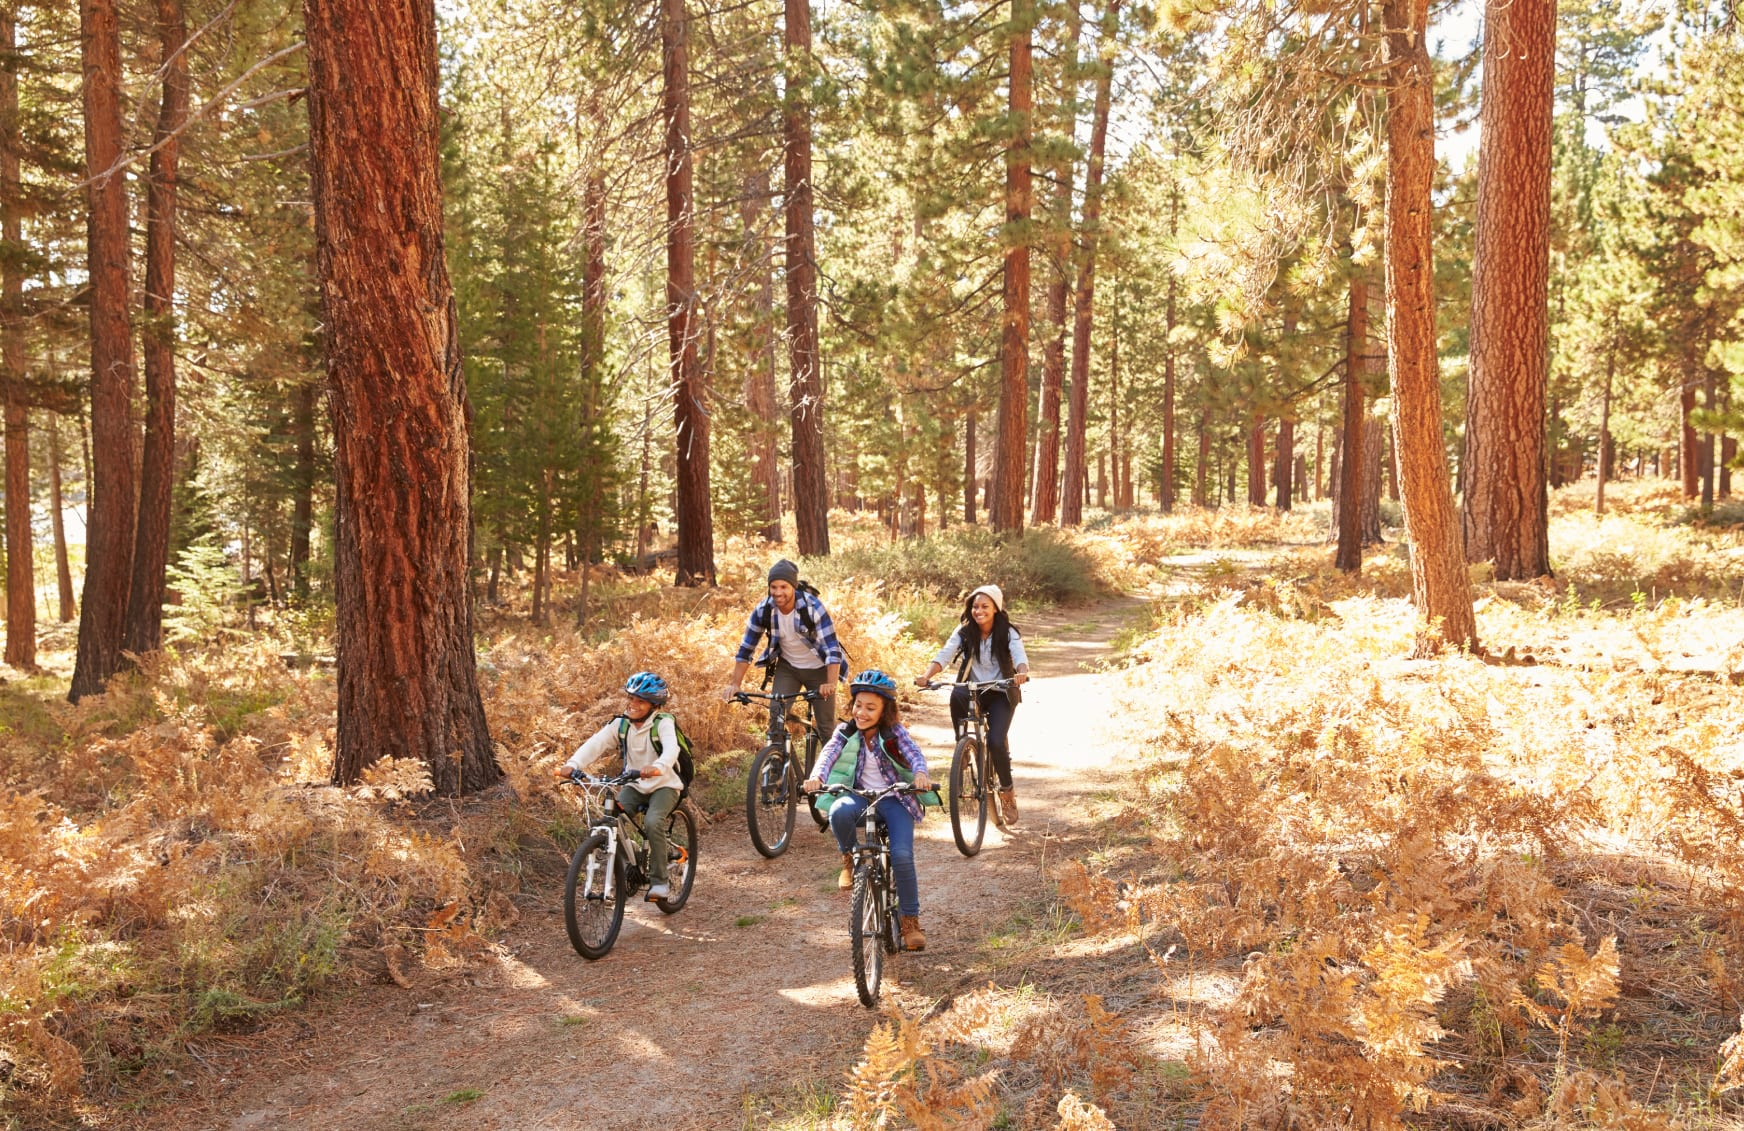 Cycling Tips for the Perfect Family Bike Ride